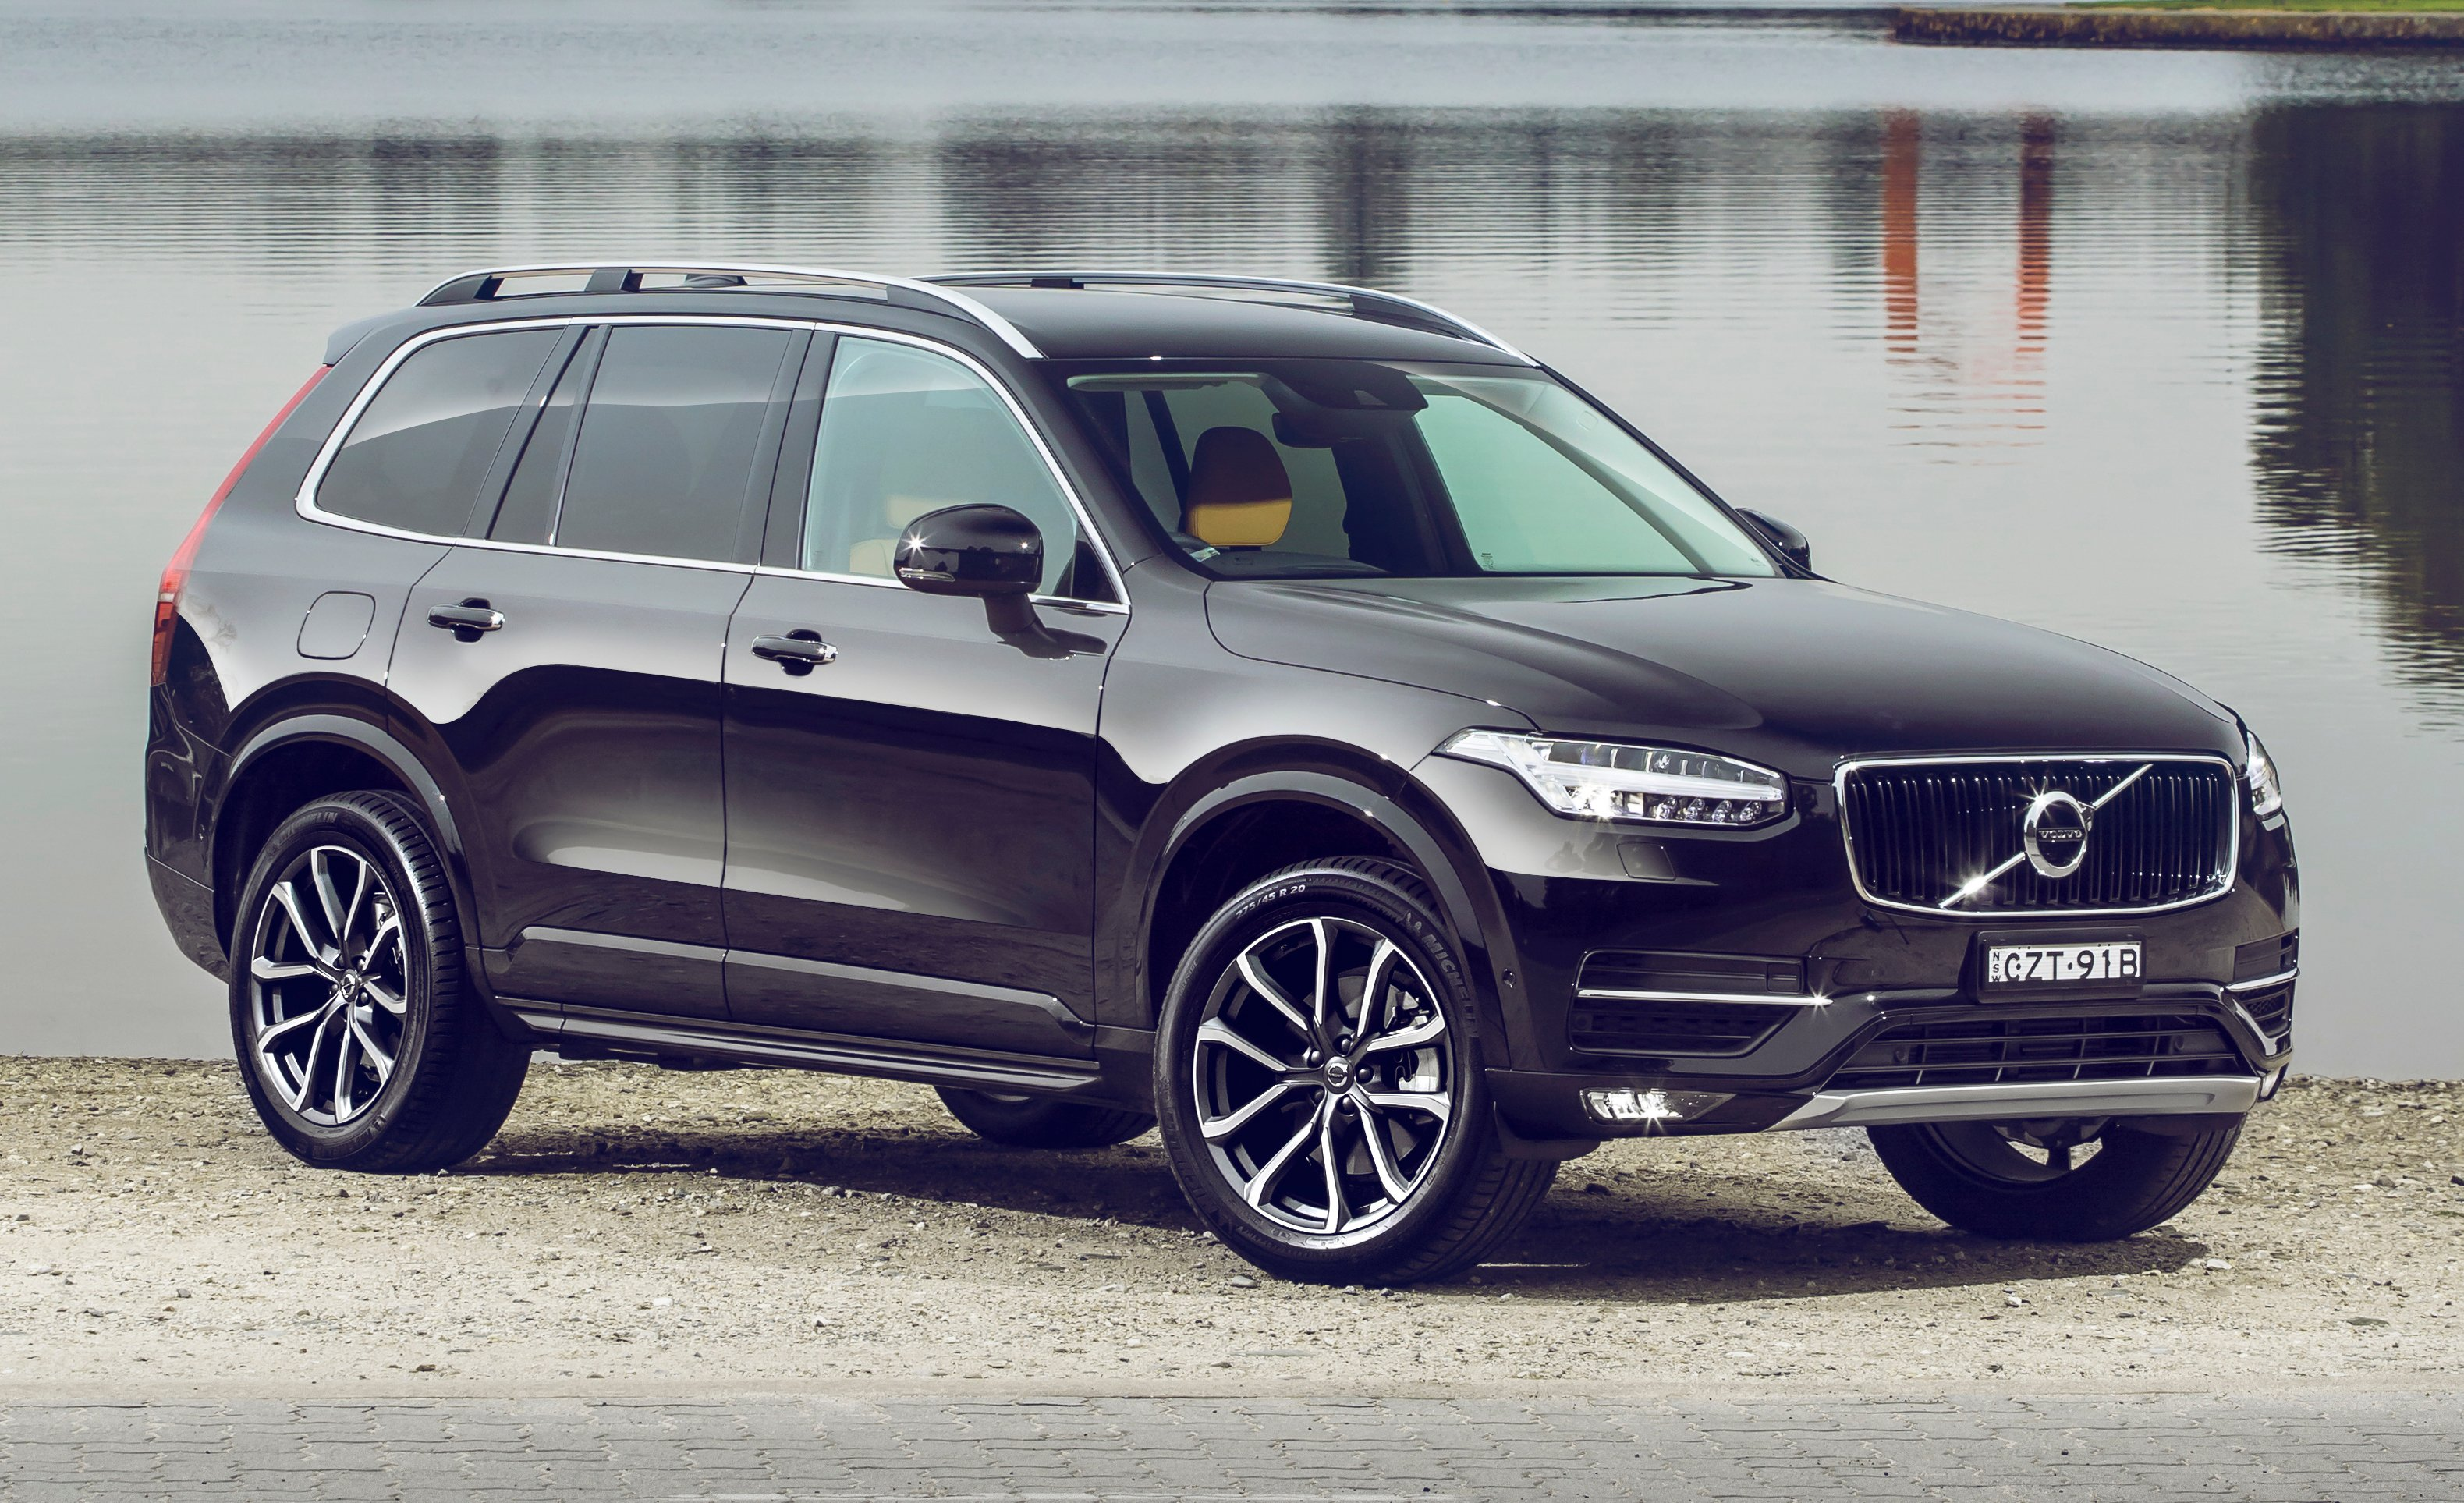 2006 Volvo Xc90 >> 2016 Volvo XC90 Review - photos | CarAdvice